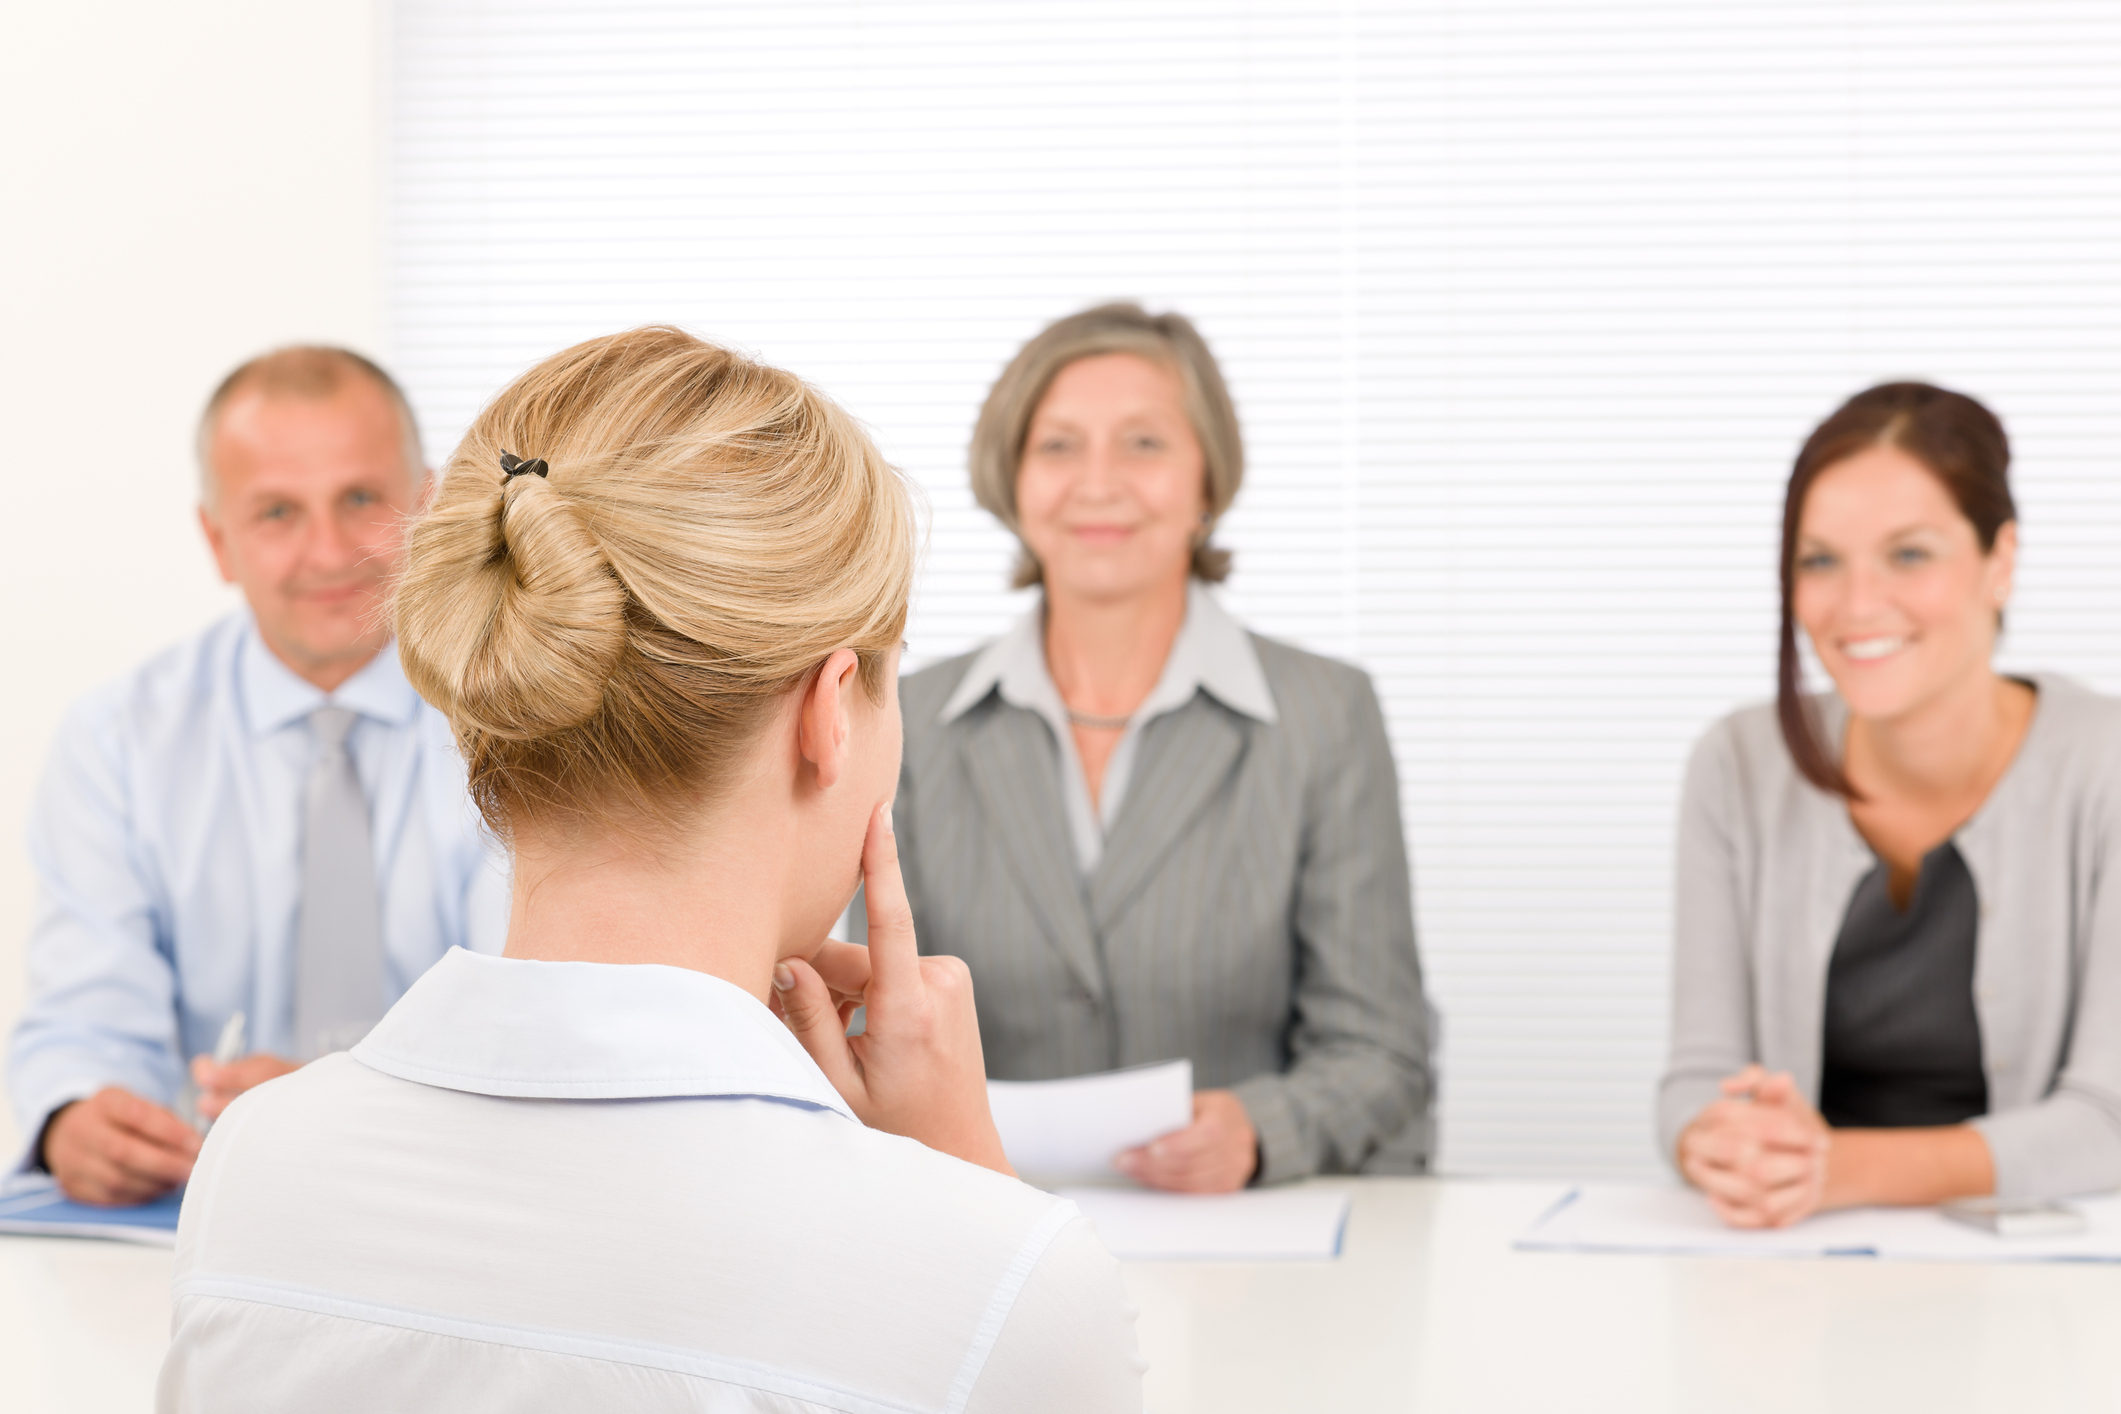 The best federal agency to work at have strong leadership engagement. (Getty Images/CandyBoxImages)